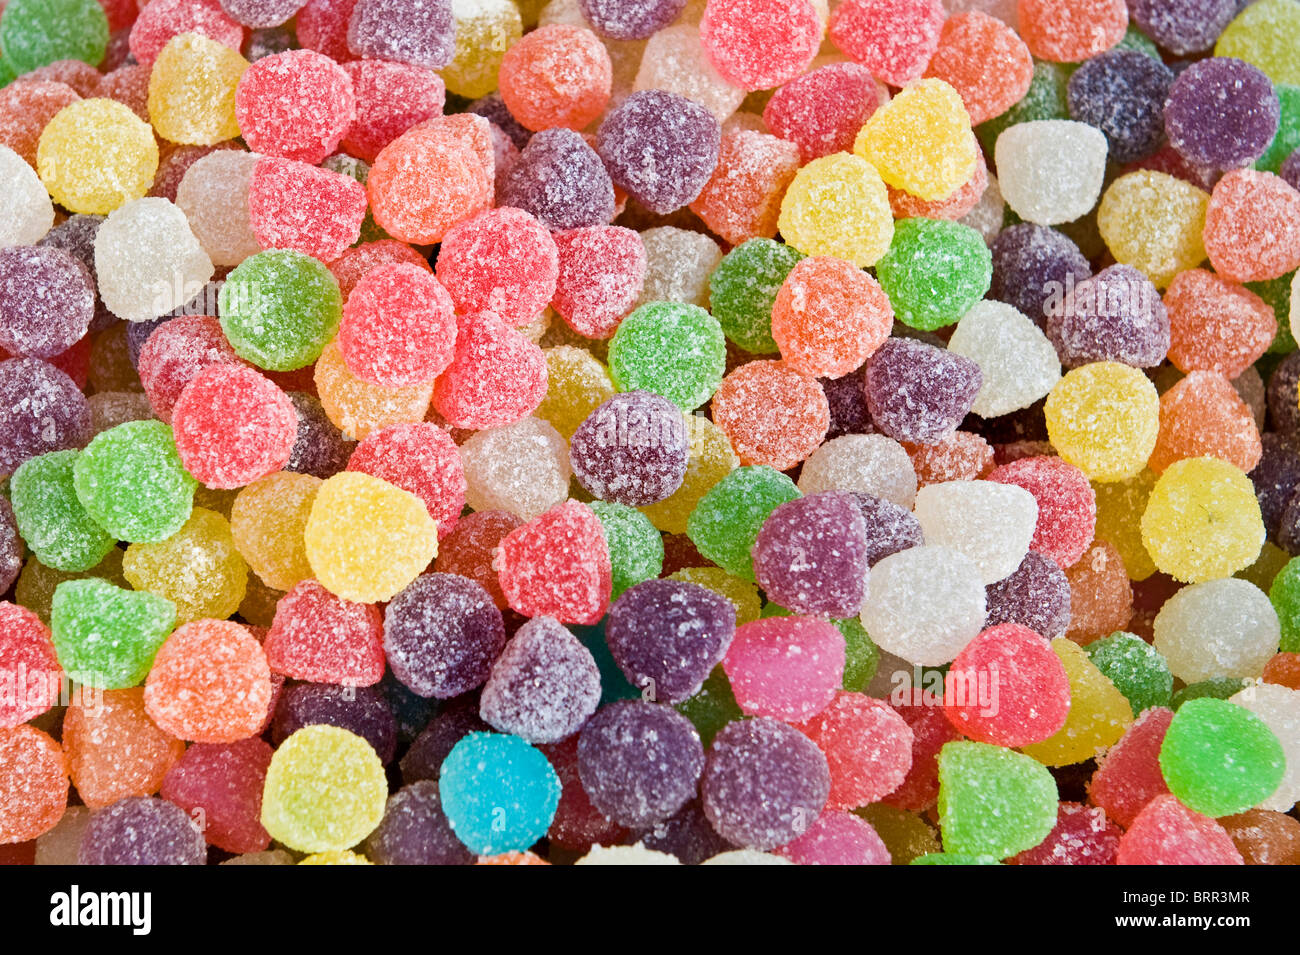 Close-up of small multicoloured sugar coated jelly candies - Stock Image